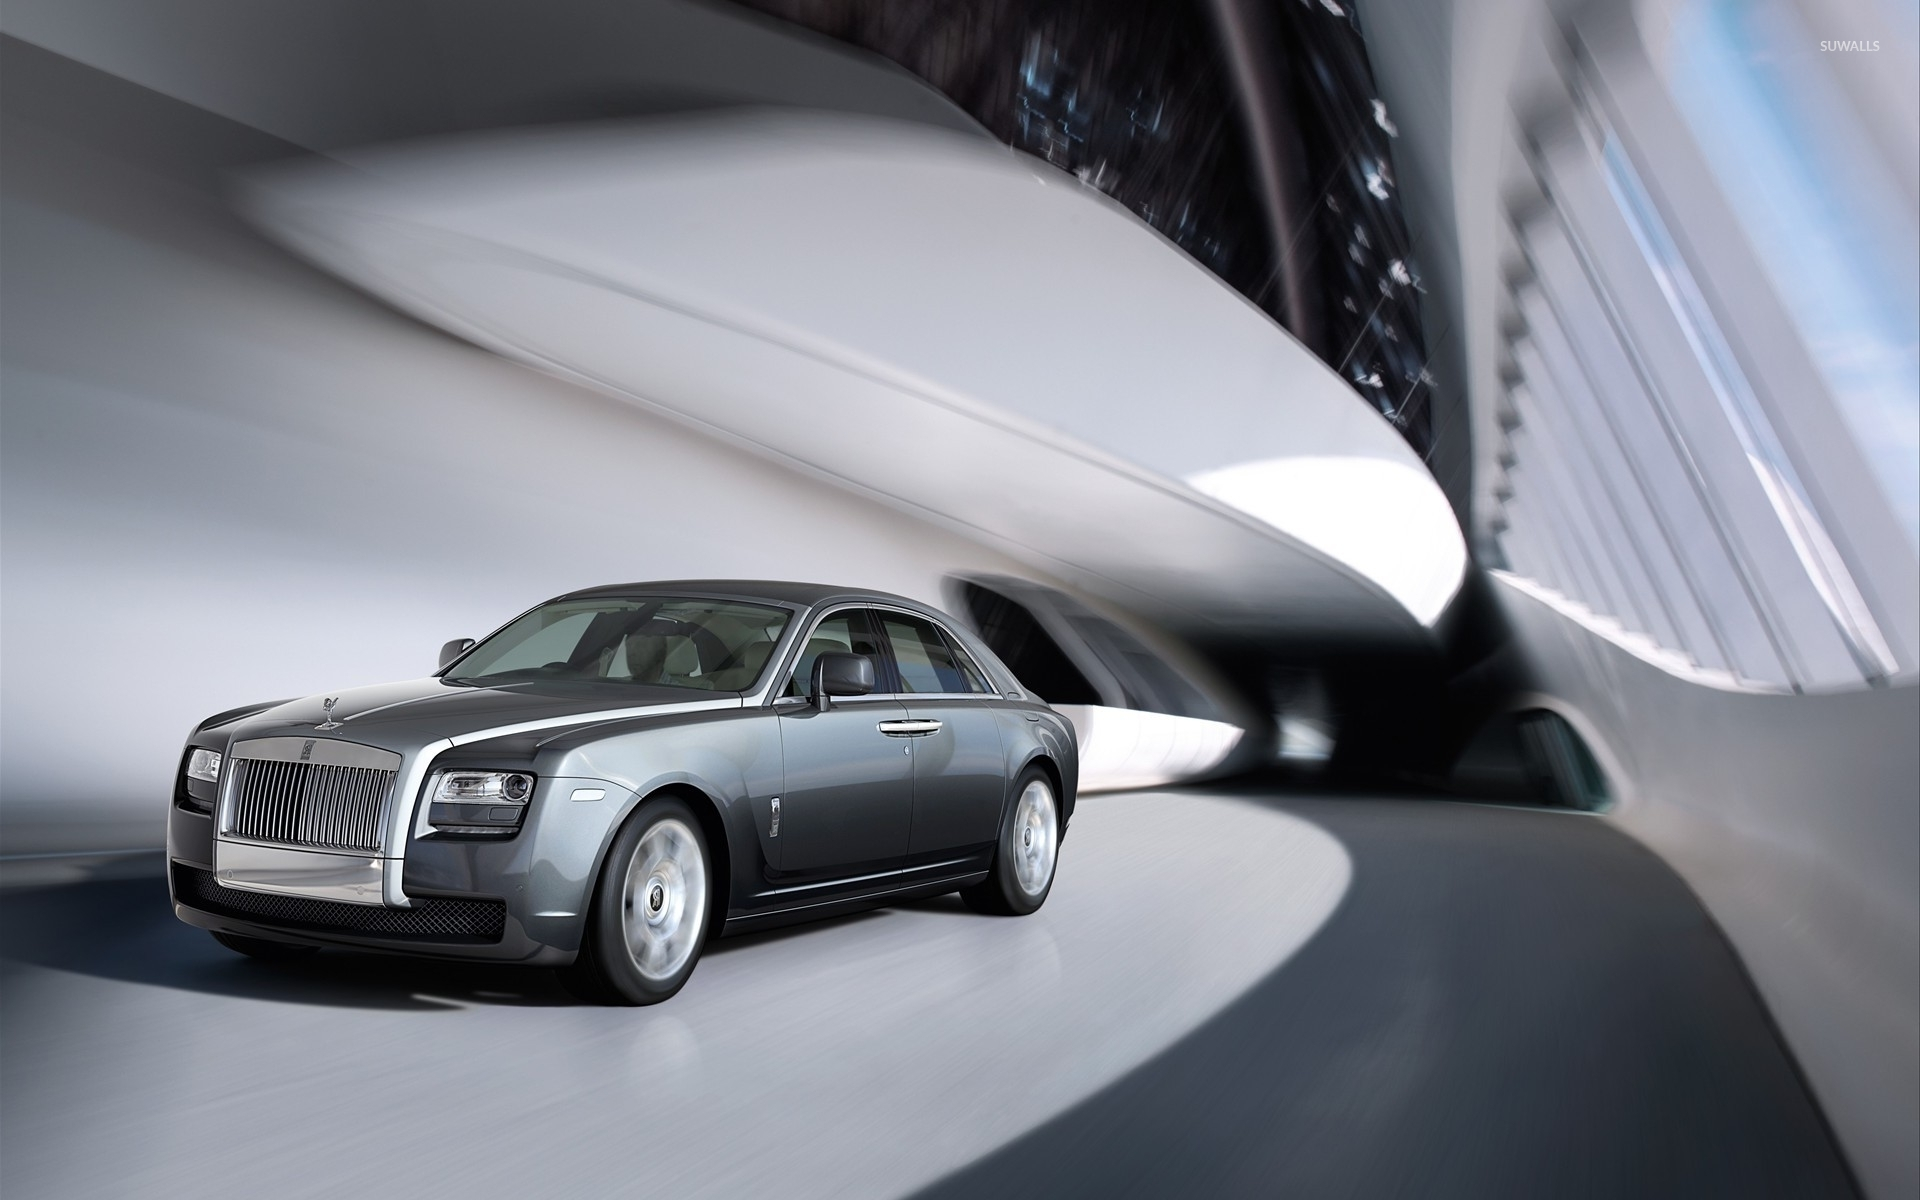 rolls-royce phantom wallpaper - car wallpapers - #33295